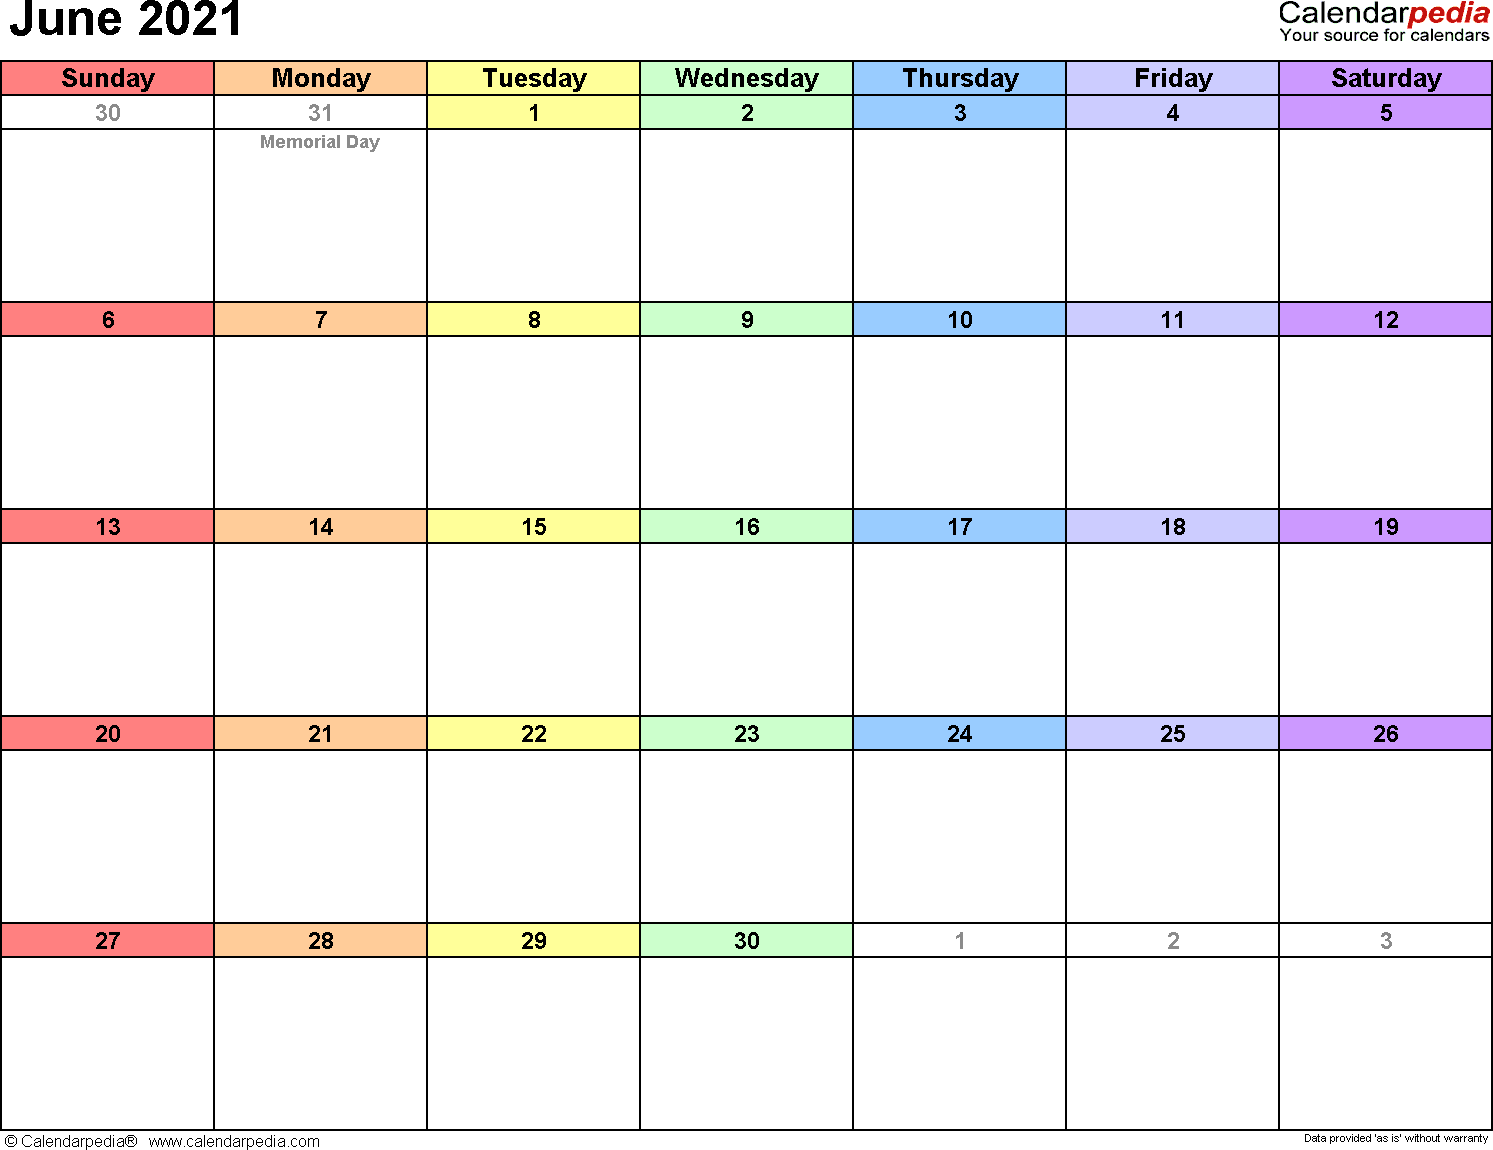 June 2021 calendar printable template